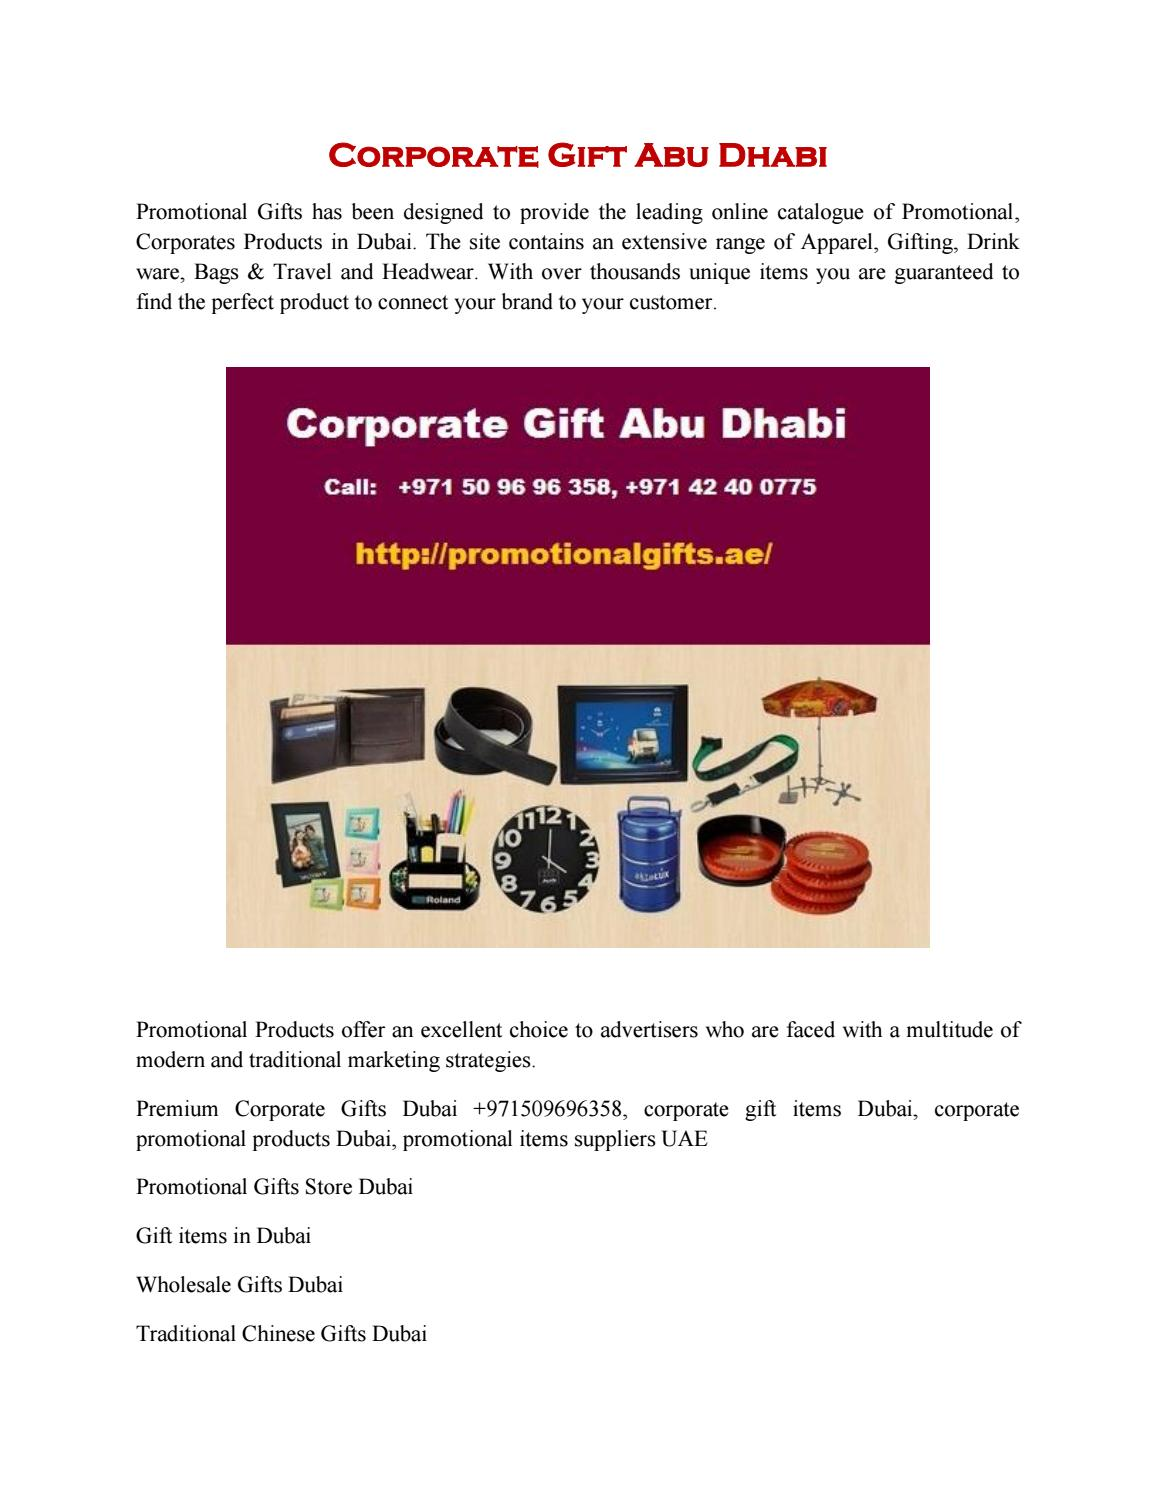 Corporate Gift Abu Dhabi by Revti - issuu